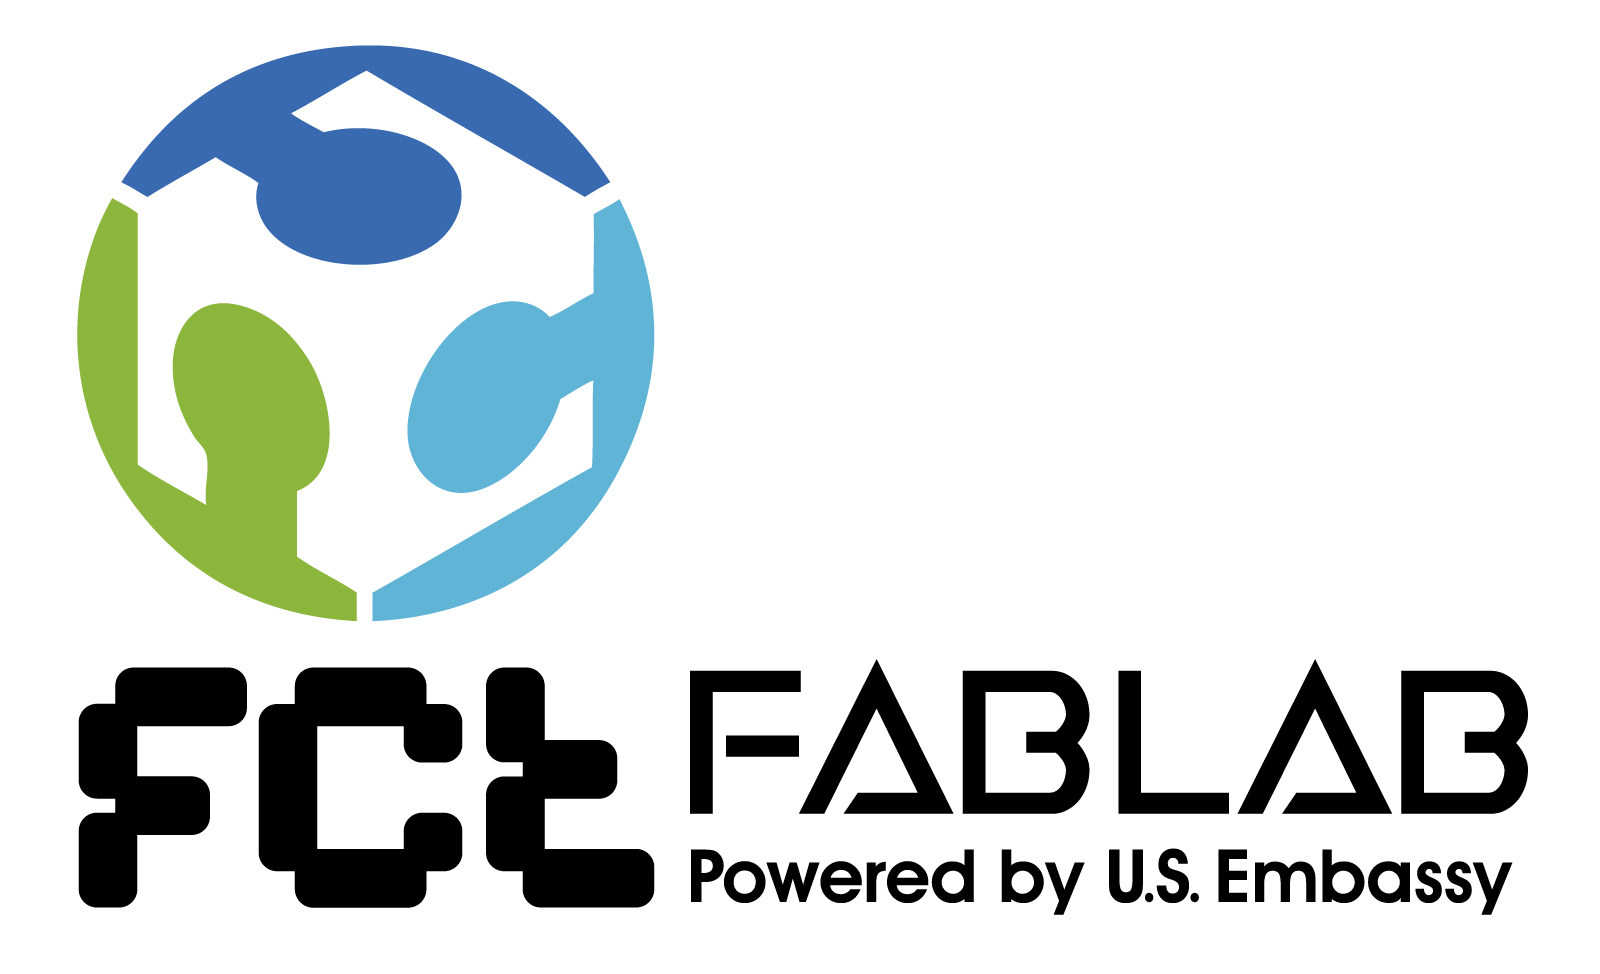 FCT FABLAB Powered by U.S. Embassy